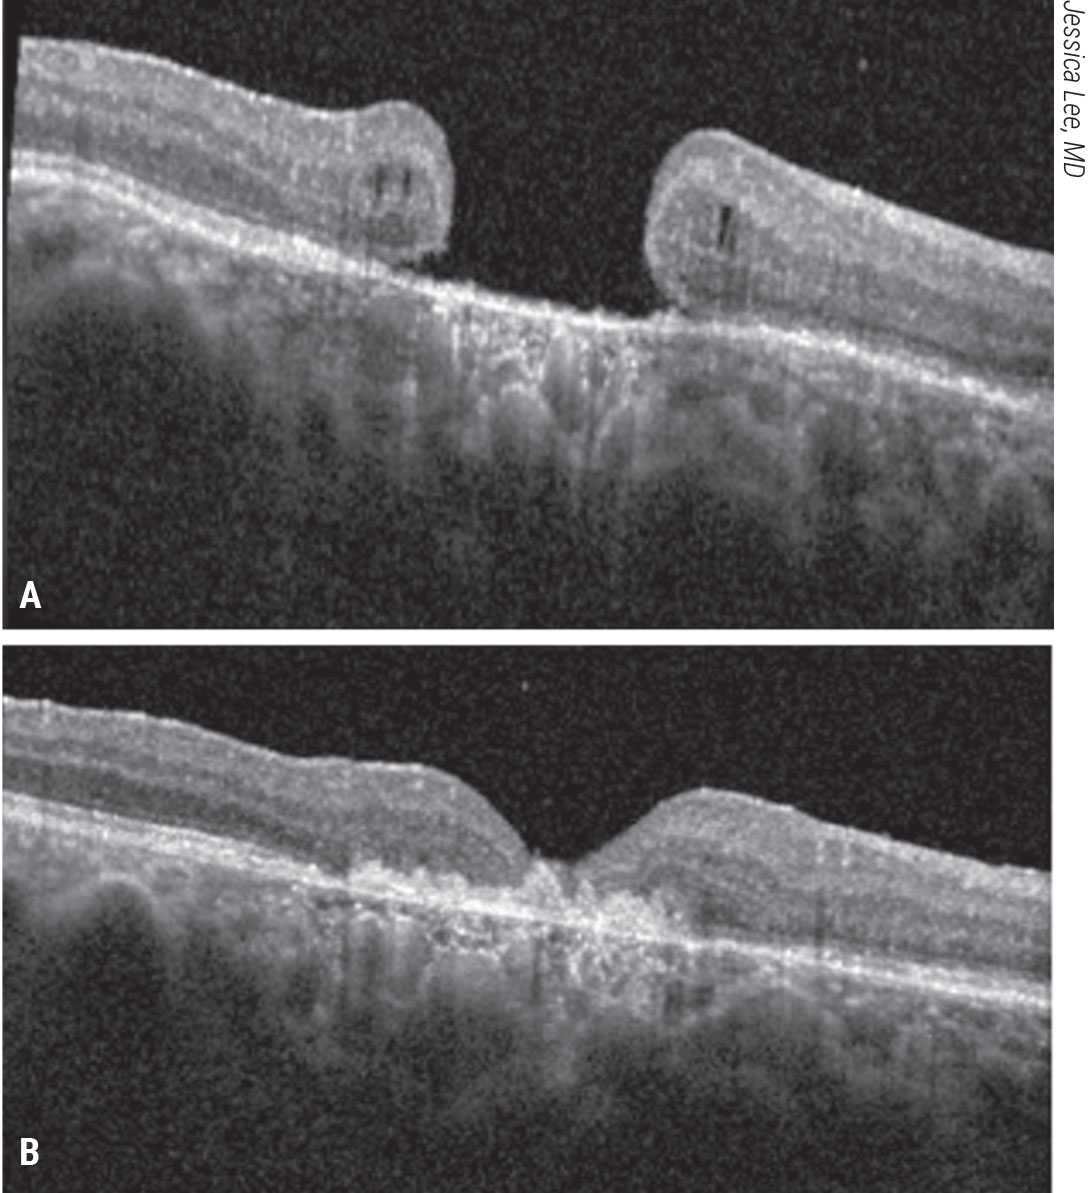 Figure 9. Subretinal human amniotic membrane for a refractory macular hole. A patient with count-fingers vision presented with a refractory macular hole after prior vitrectomy, ILM peeling and gas tamponade. A human amniotic membrane graft was placed in a subretinal position followed by gas tamponade. The patient's macular hole closed and visual acuity improved to 20/200 (B).